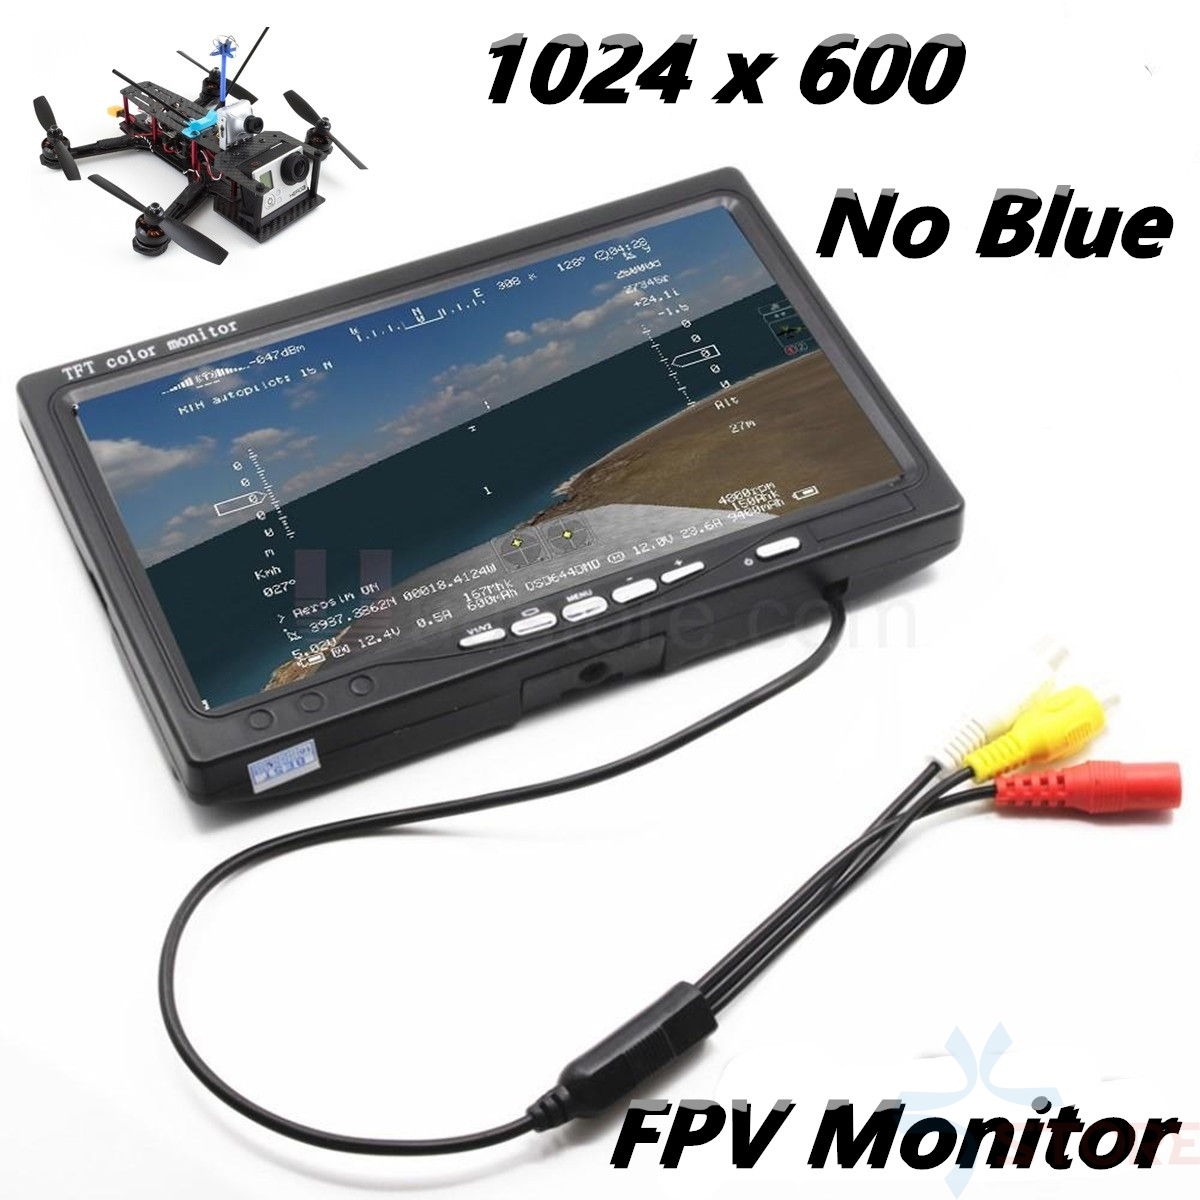 7 pollice TFT LCD Monitor FPV 1024x600 w/T spina Schermo No blu FPV Monitor Fotografia di Ground Station Phantom RC Modello QAV250